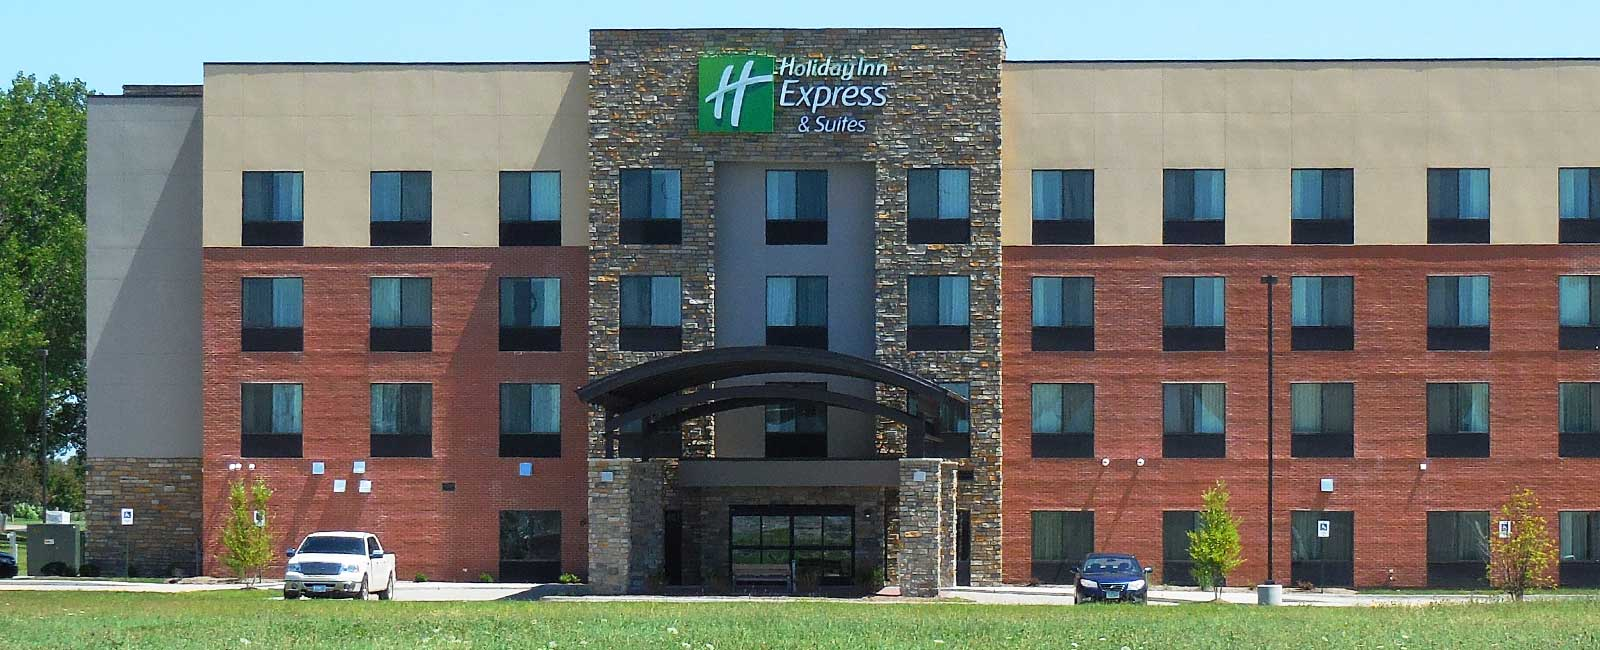 Holiday Inn Express, Tri-City Electric Co., Davenport